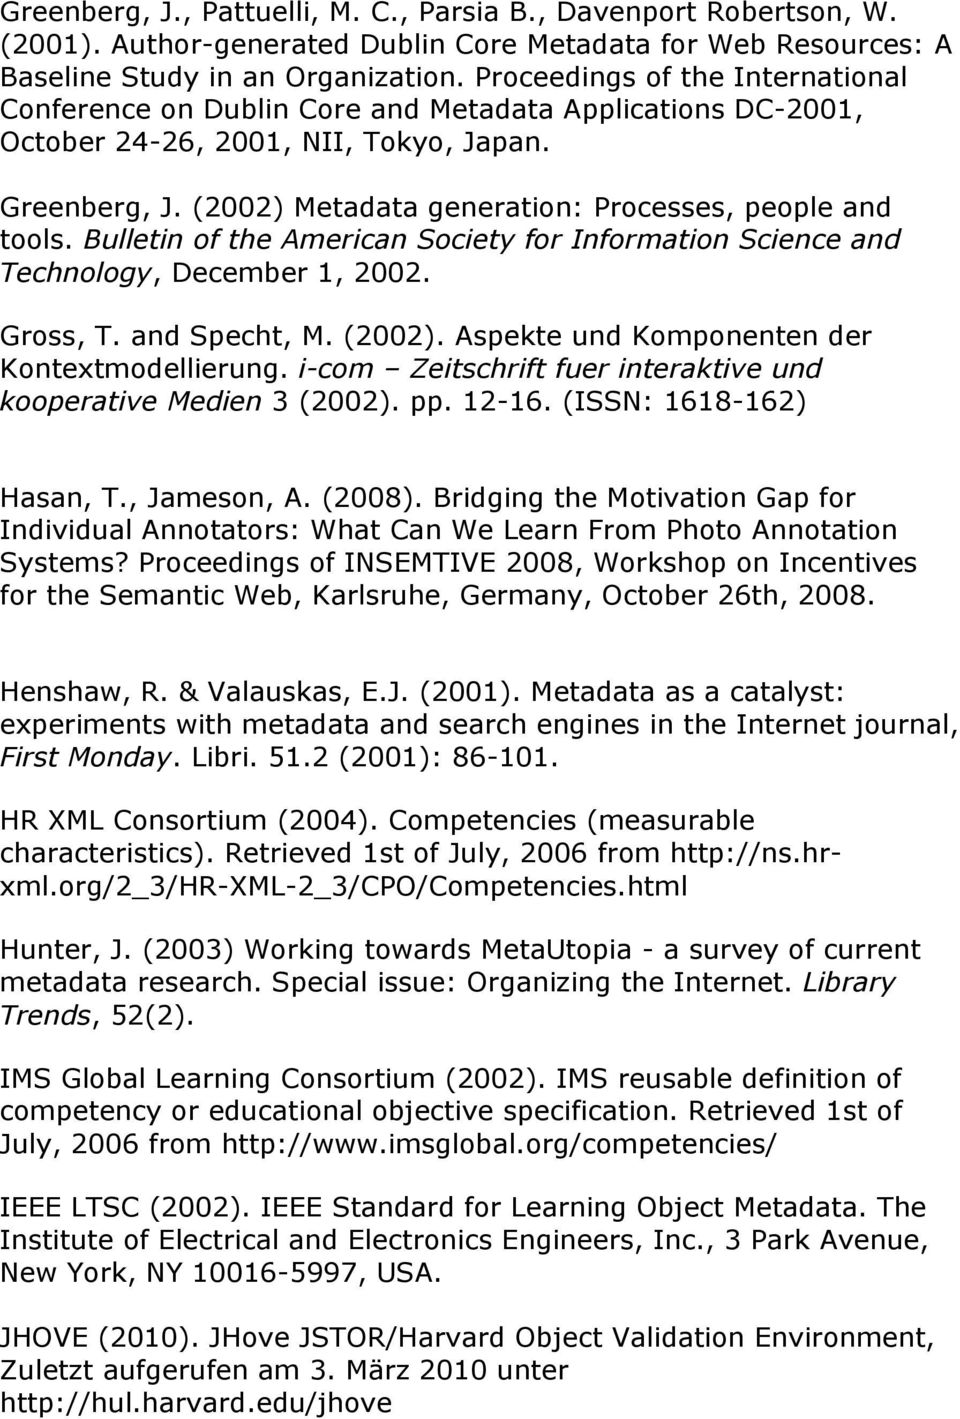 (2002) Metadata generation: Processes, people and tools. Bulletin of the American Society for Information Science and Technology, December 1, 2002. Gross, T. and Specht, M. (2002).